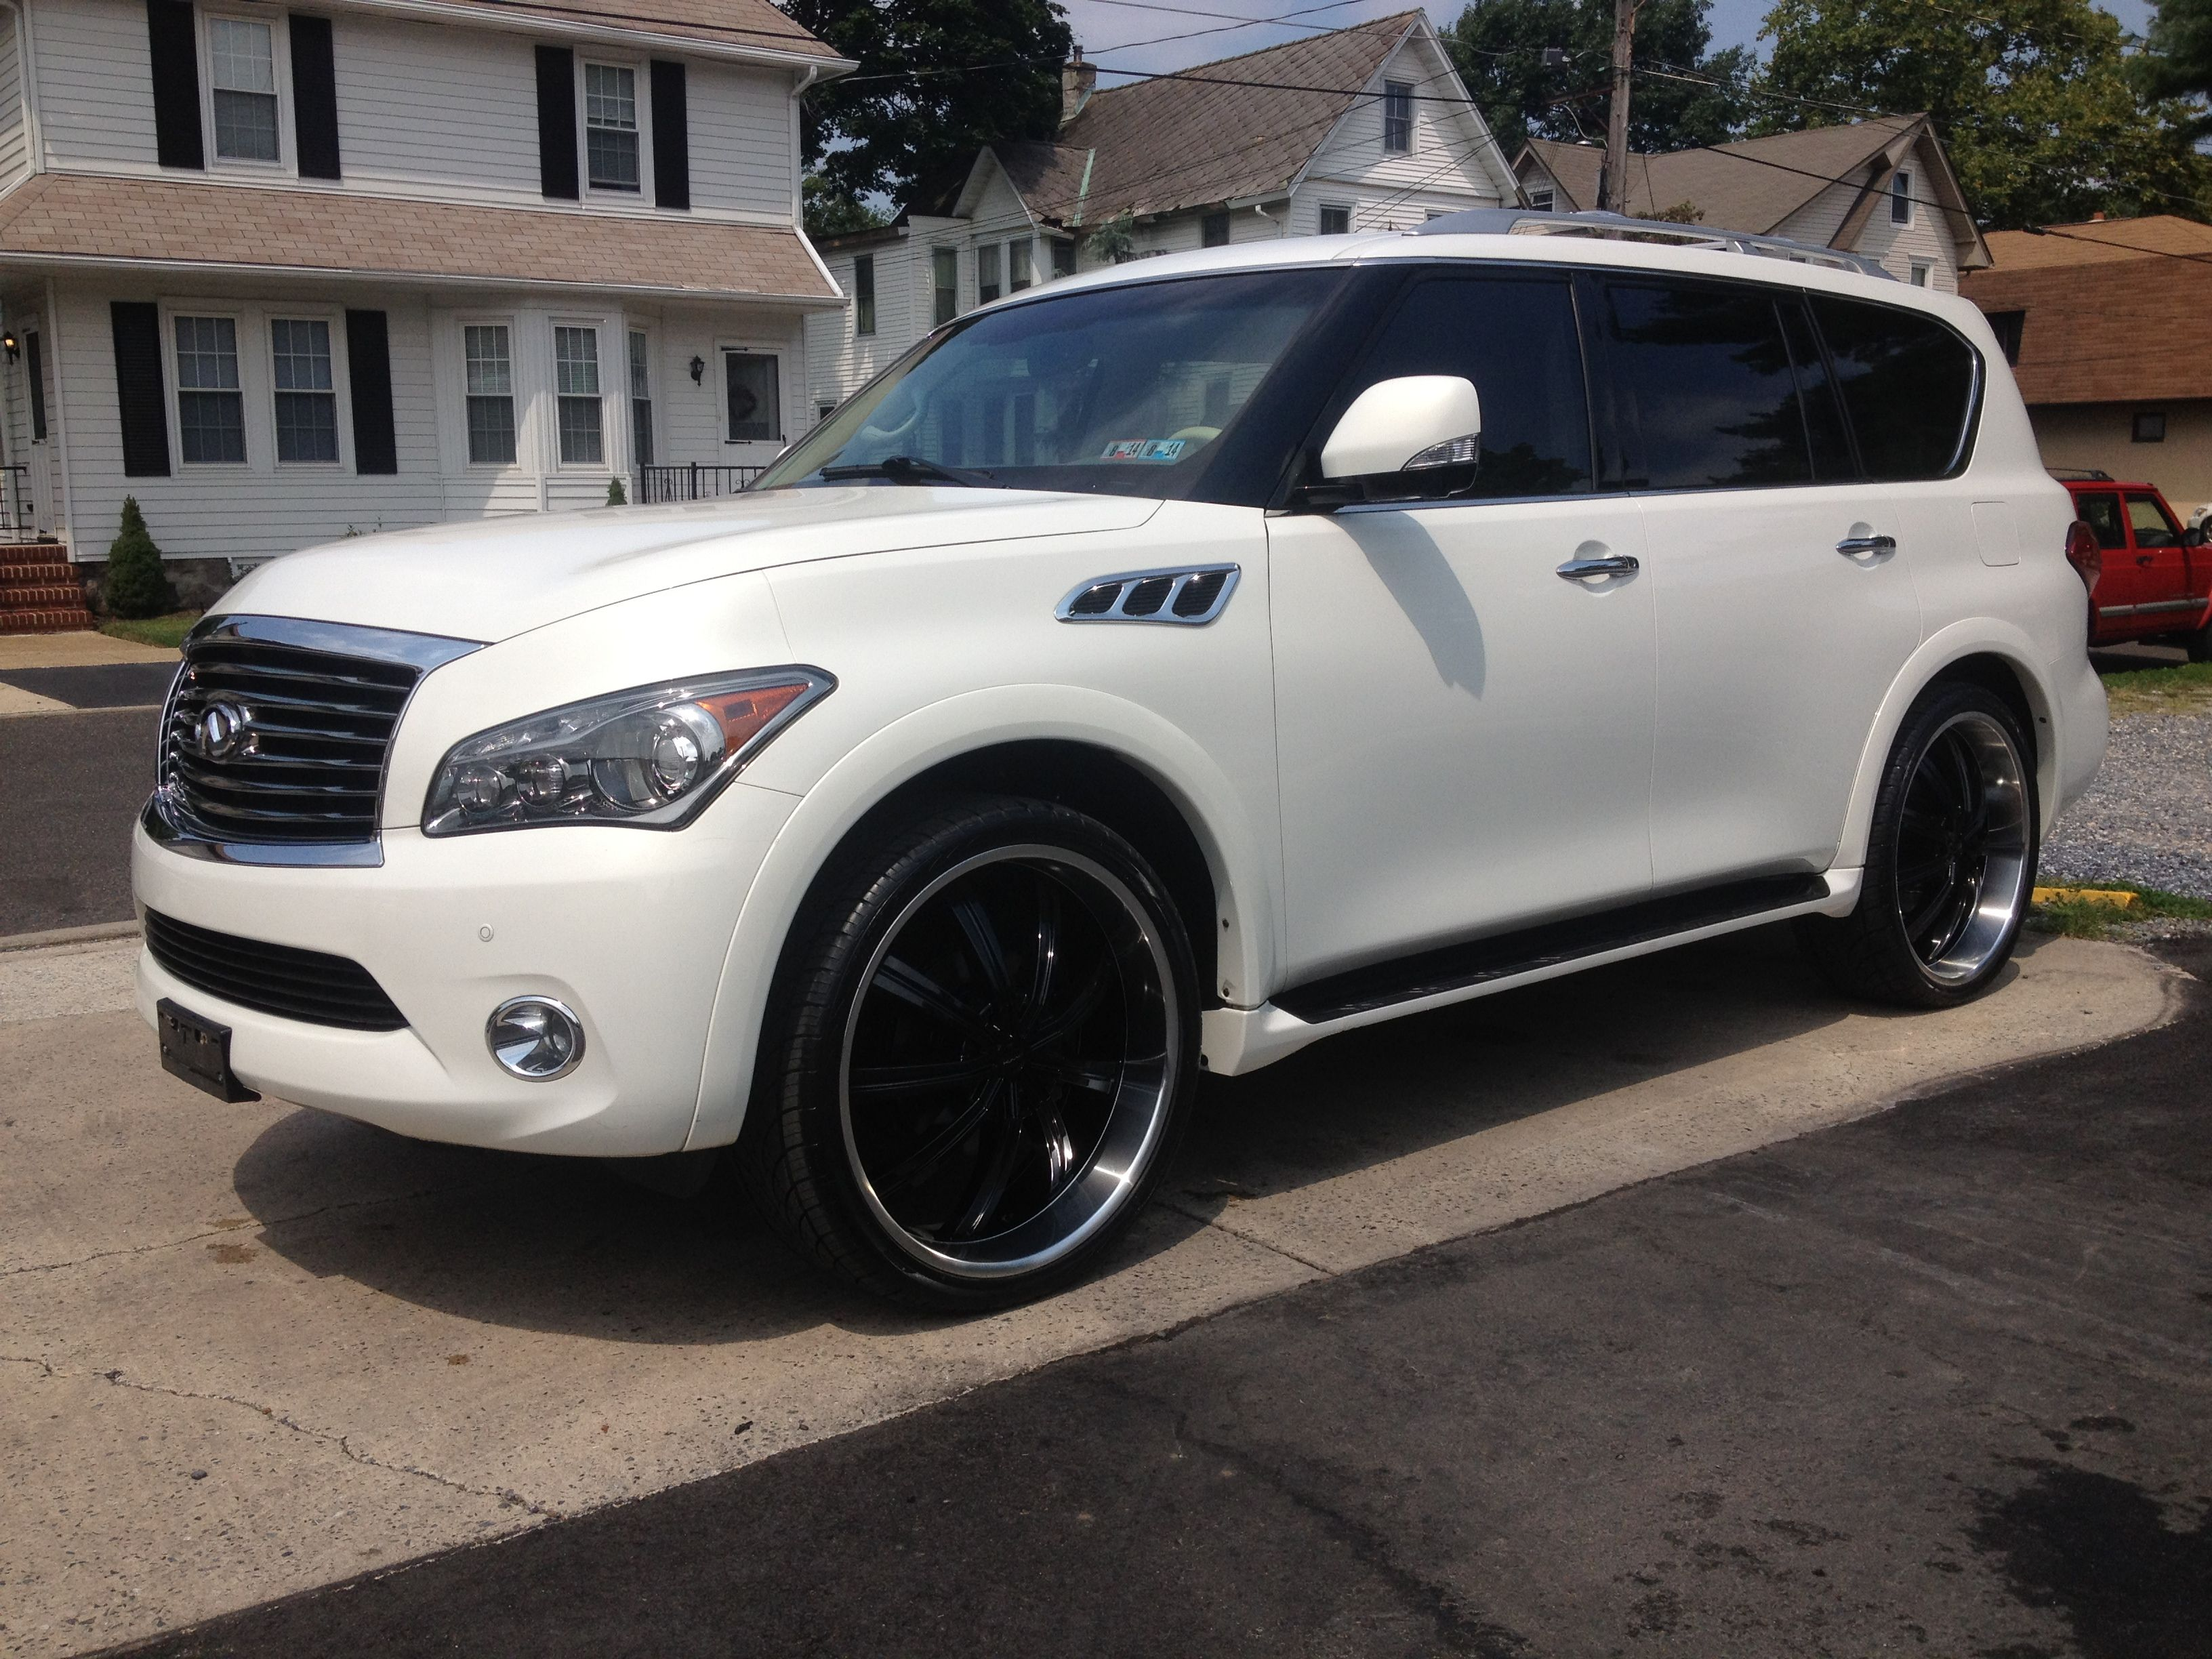 Infiniti qx56 black 2011my family car lol black on black baby qx56 on 26 rims mike vick is no longer broke as evidenced by his vanachro Gallery